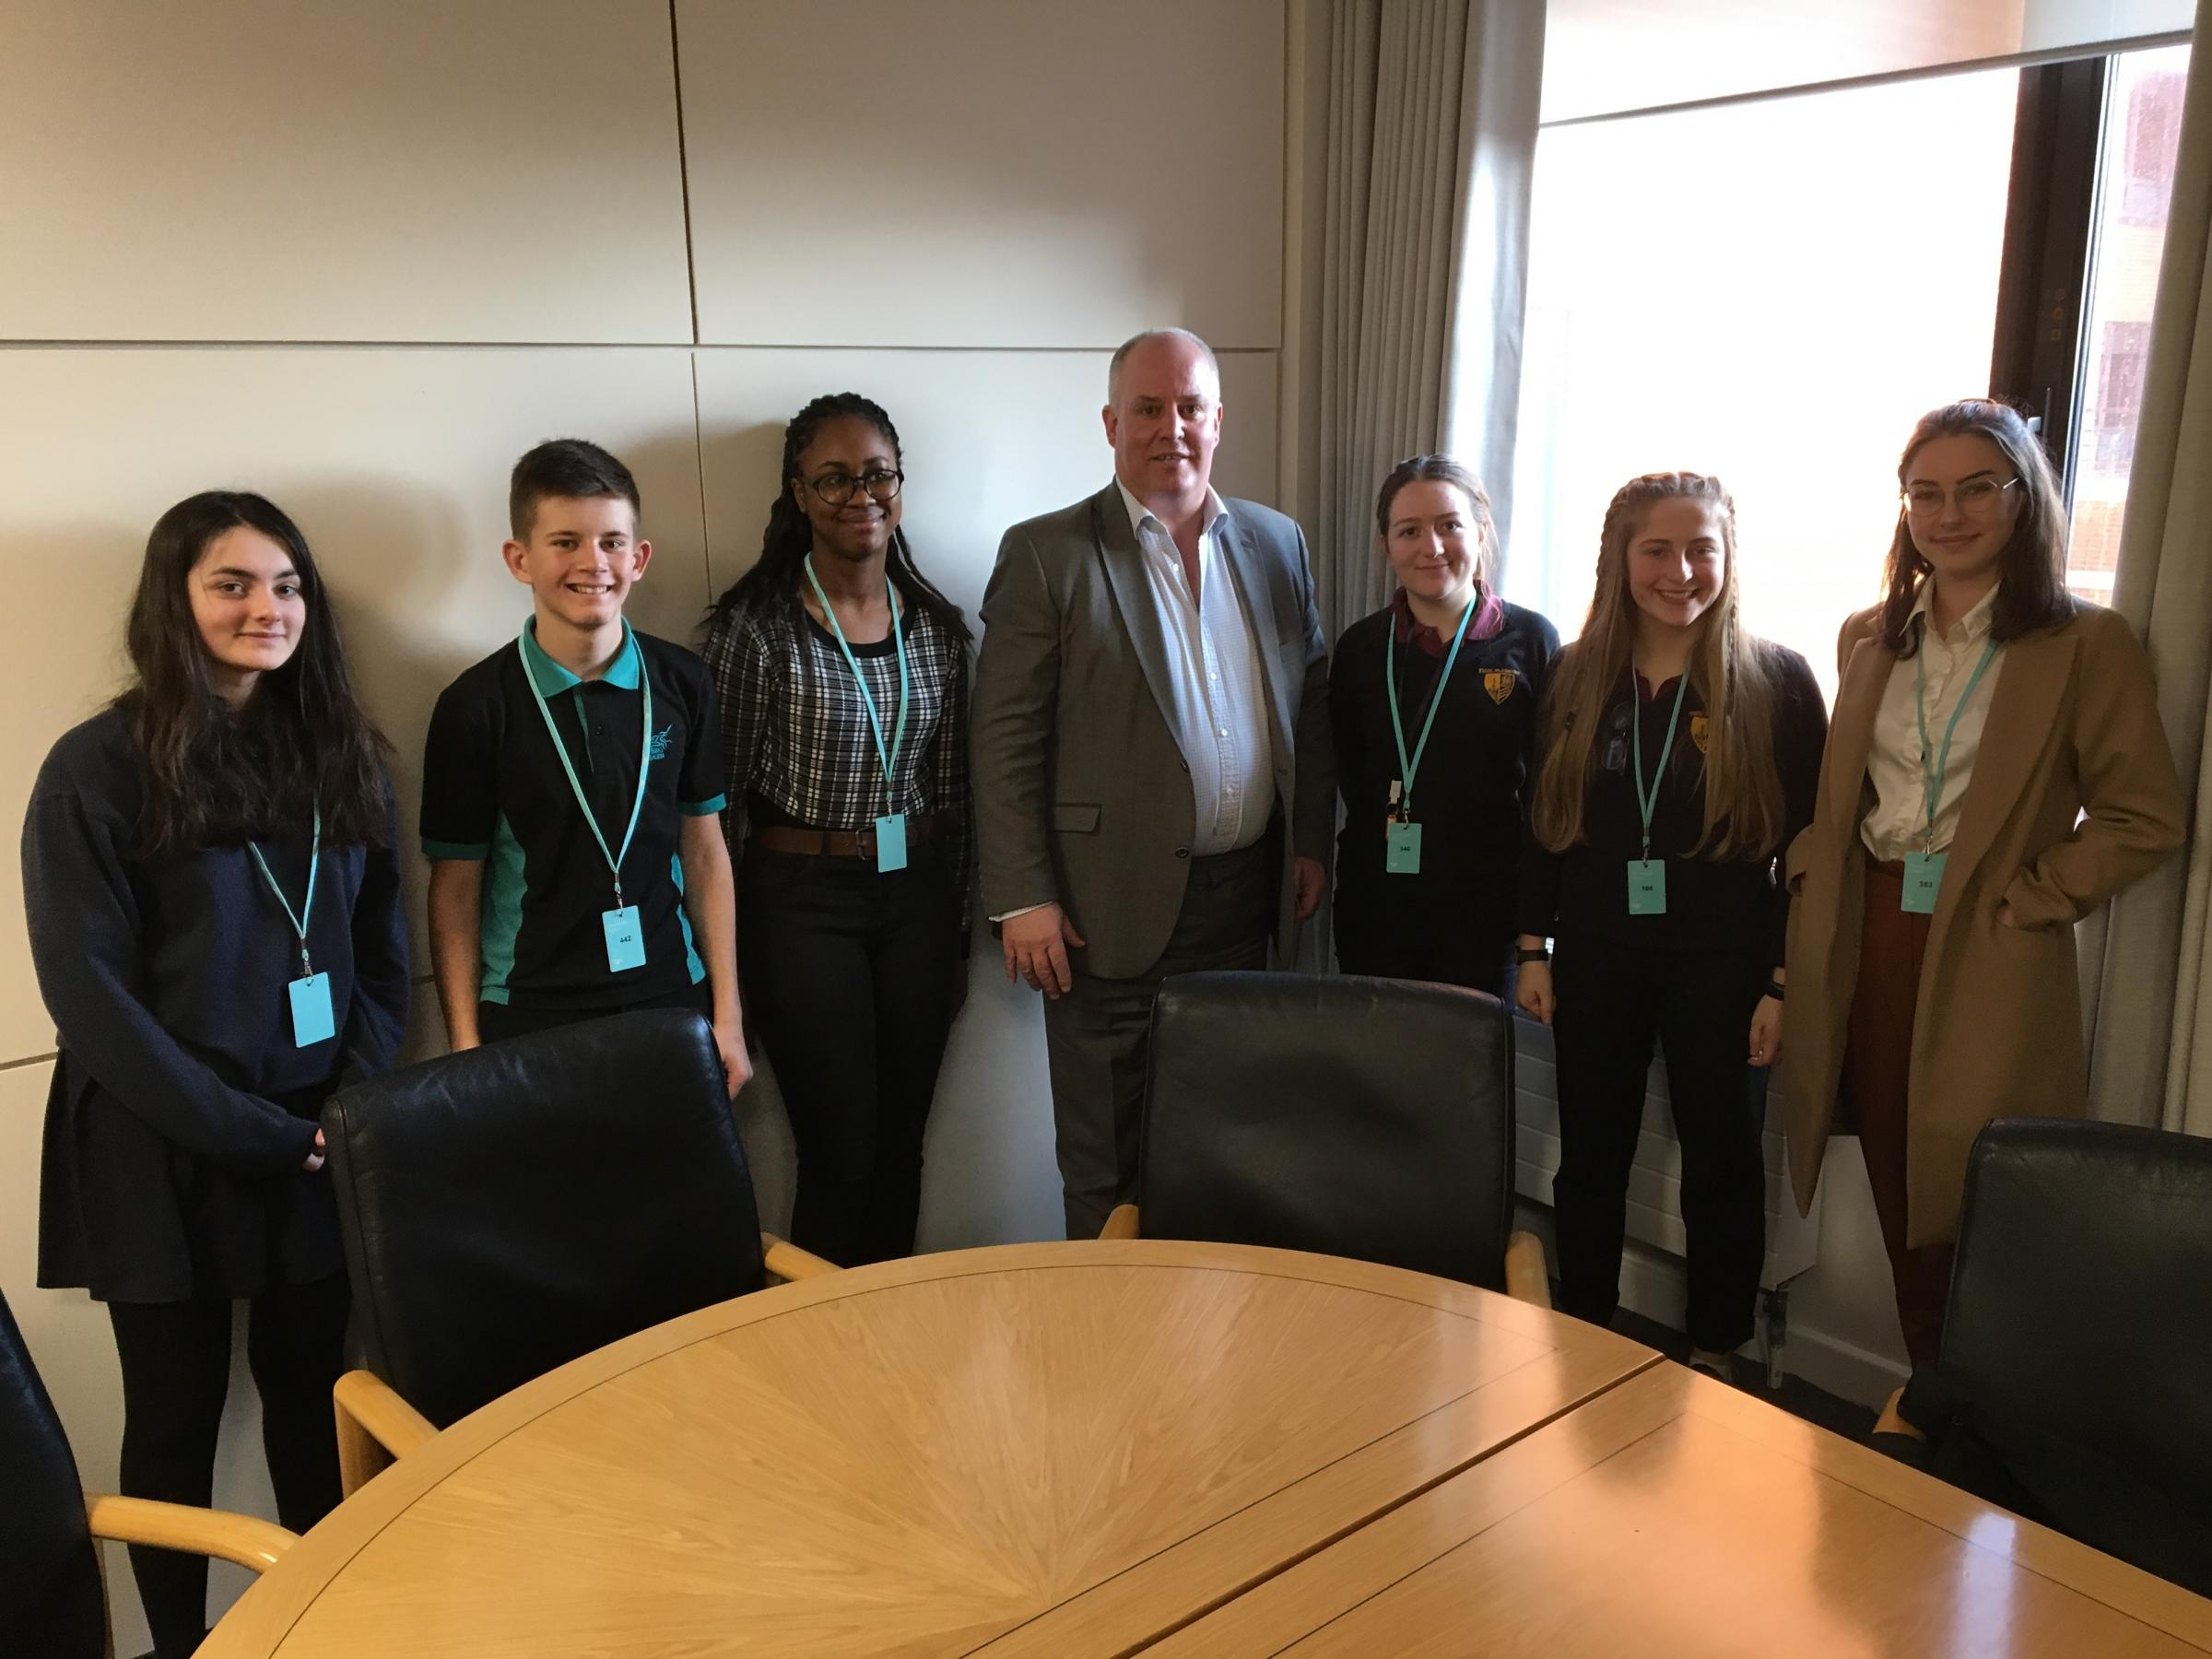 Welsh Youth Parliament members Betsan Roberts (Cardiff North), Gwion Rhisiart (Cardiff West), Angel Ezeadum (partner elected member for Race Council Cymru), Greta Evans (partner elected member for the Urdd), Manon Clarke (Cardiff West) and Rhian Shillabee